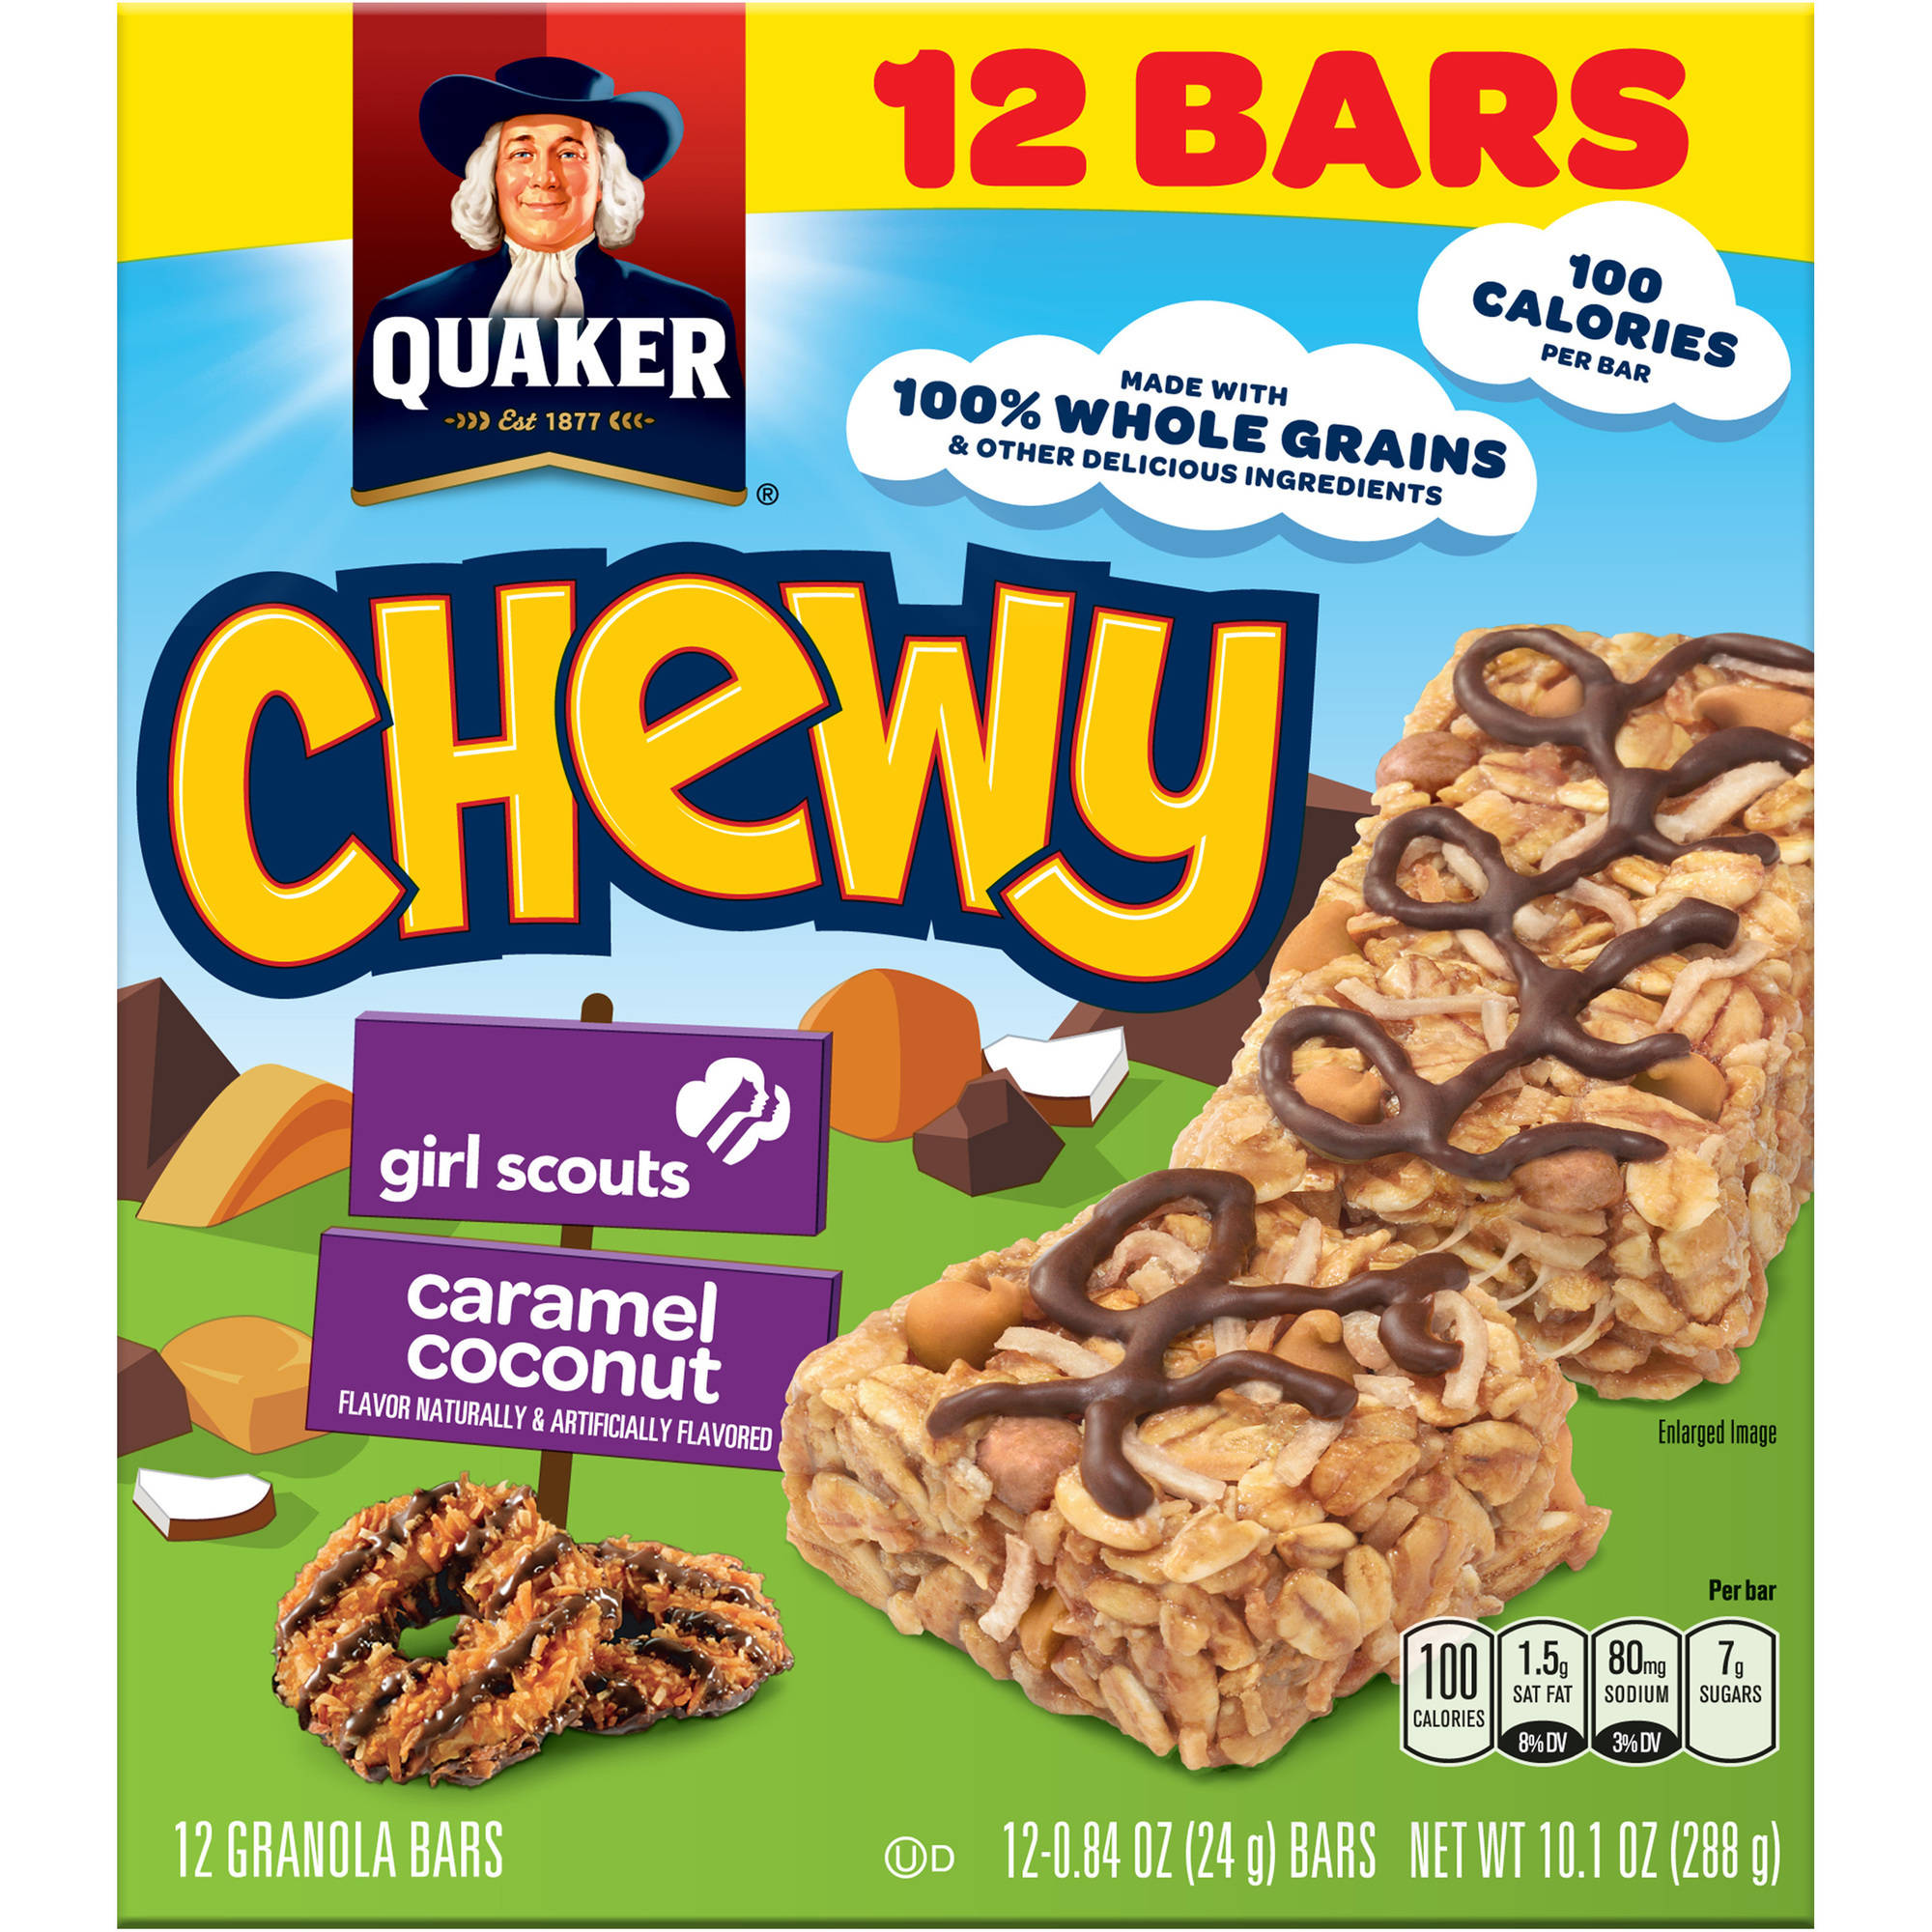 Quaker Chewy Girl Scouts Caramel Coconut Granola Bars, .84 oz, 12 count